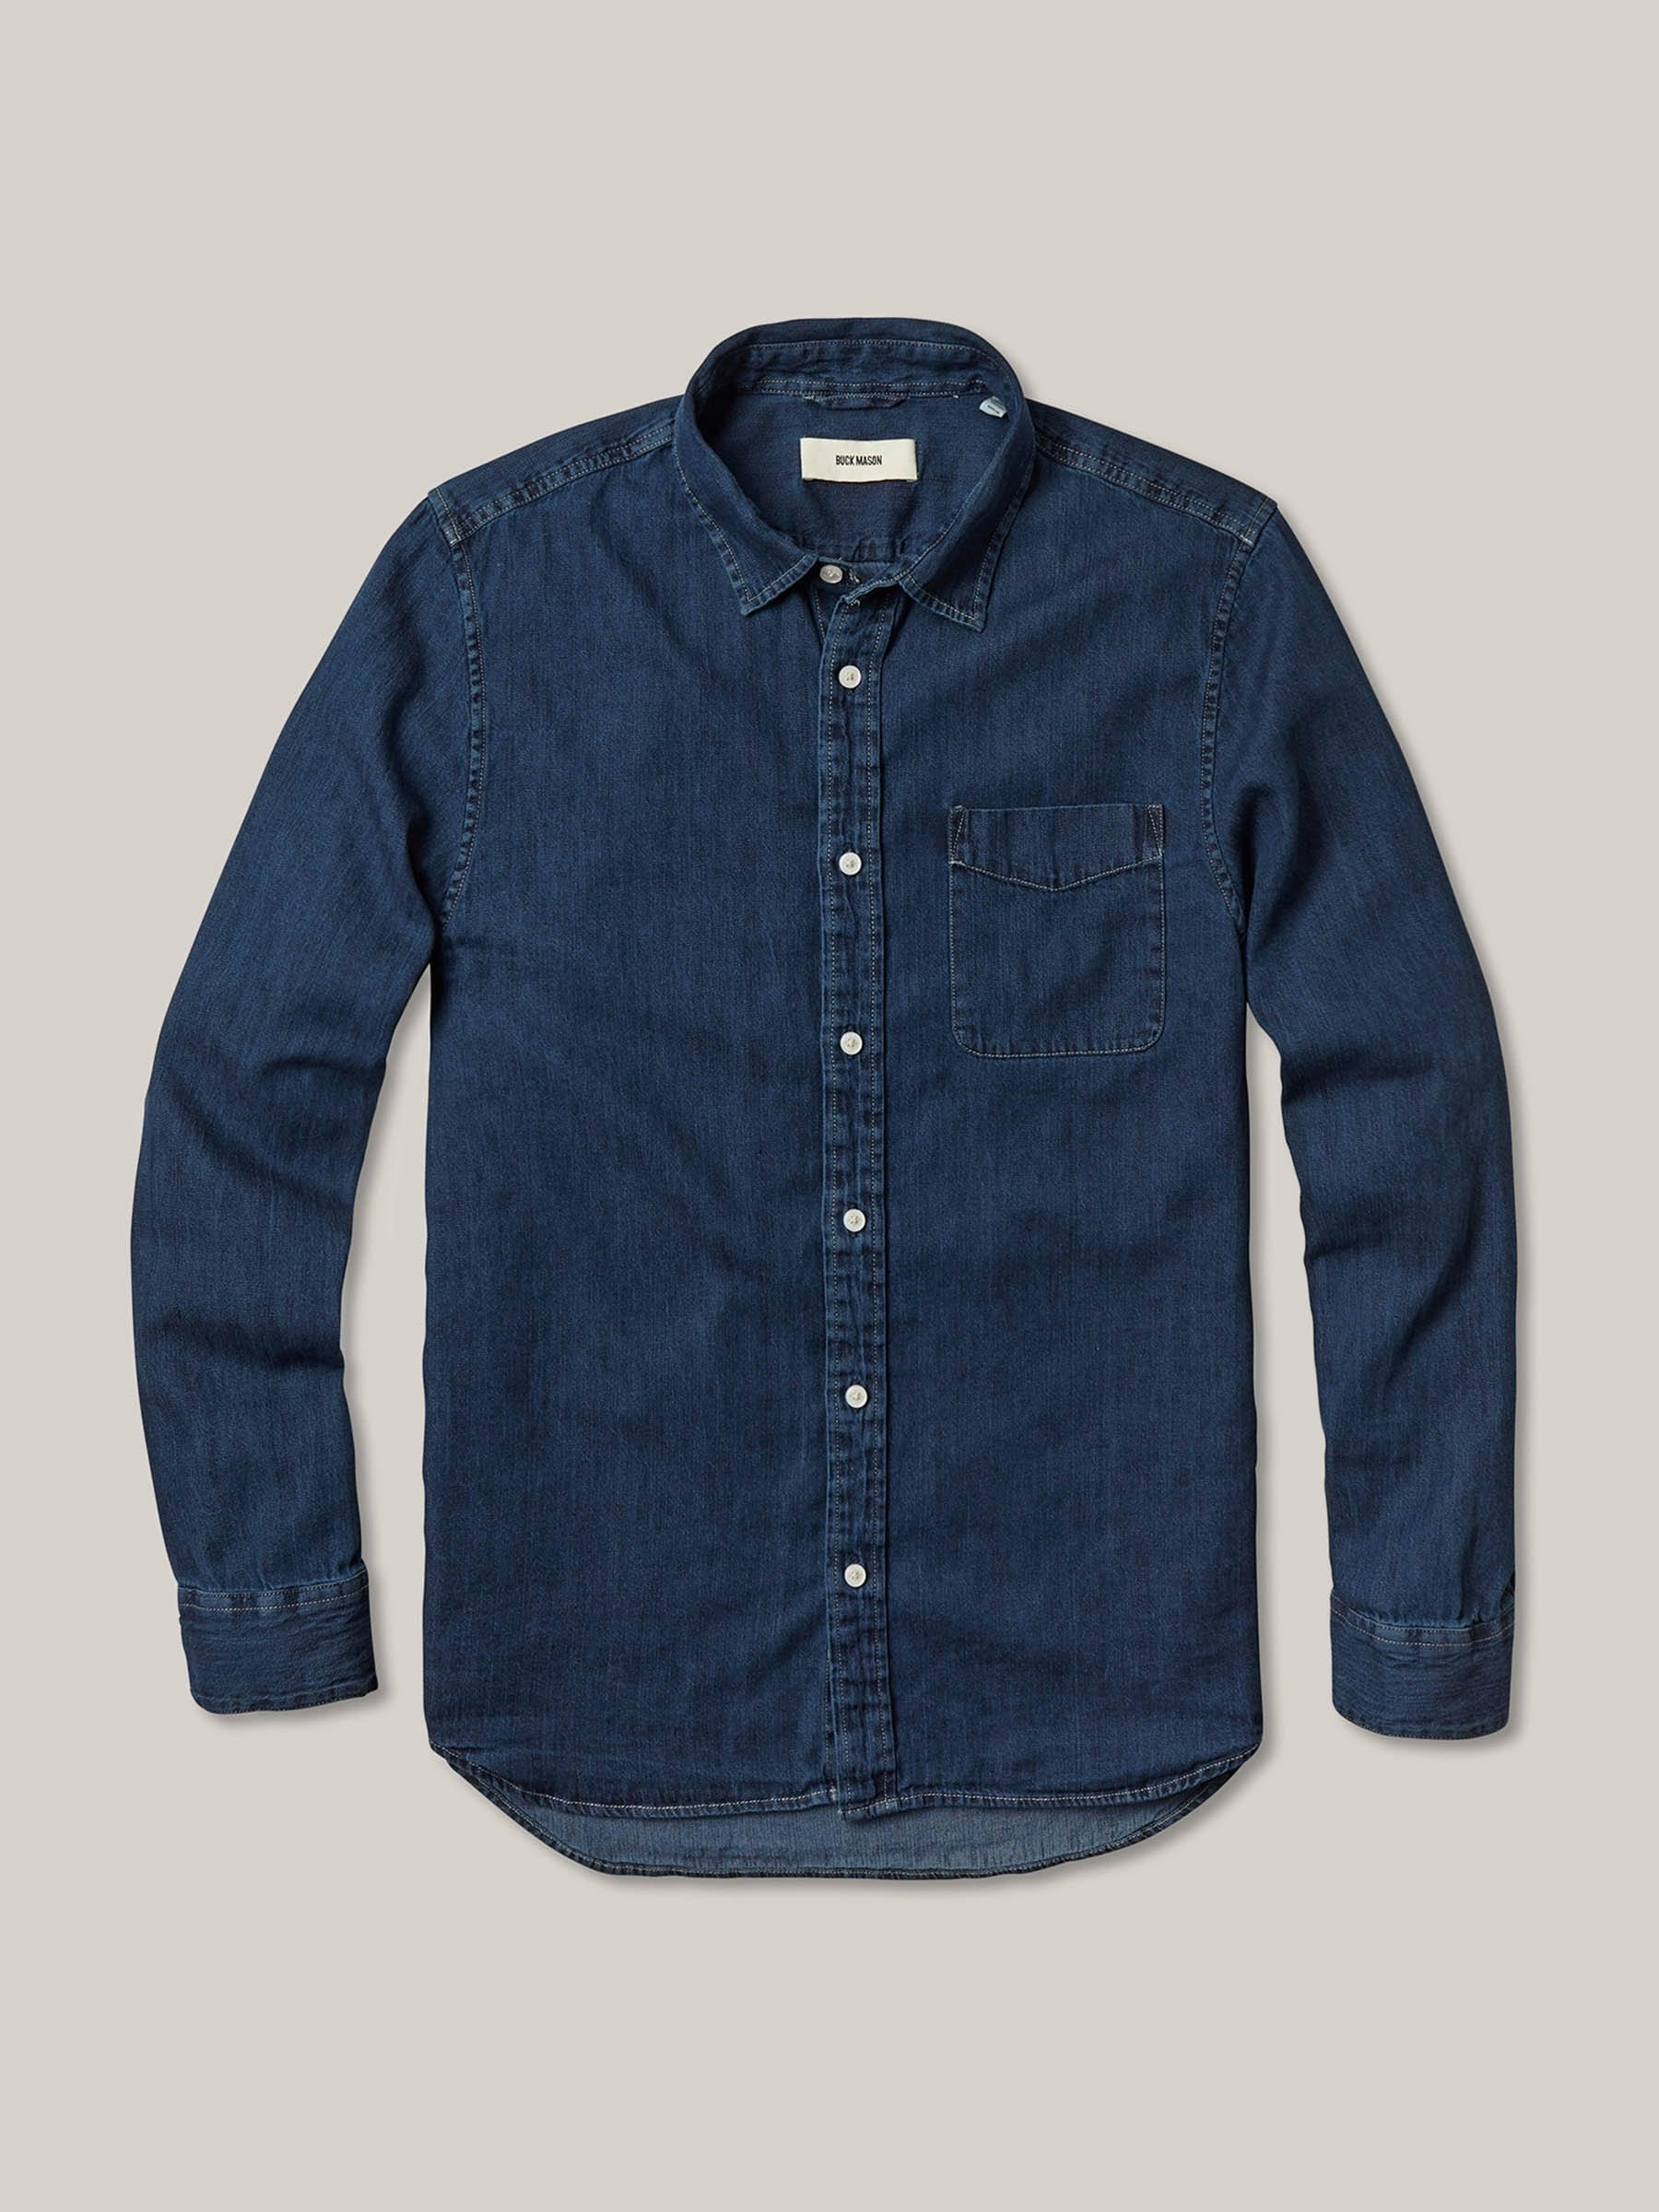 Buck Mason - 3-Month Denim Vintage One Pocket Shirt